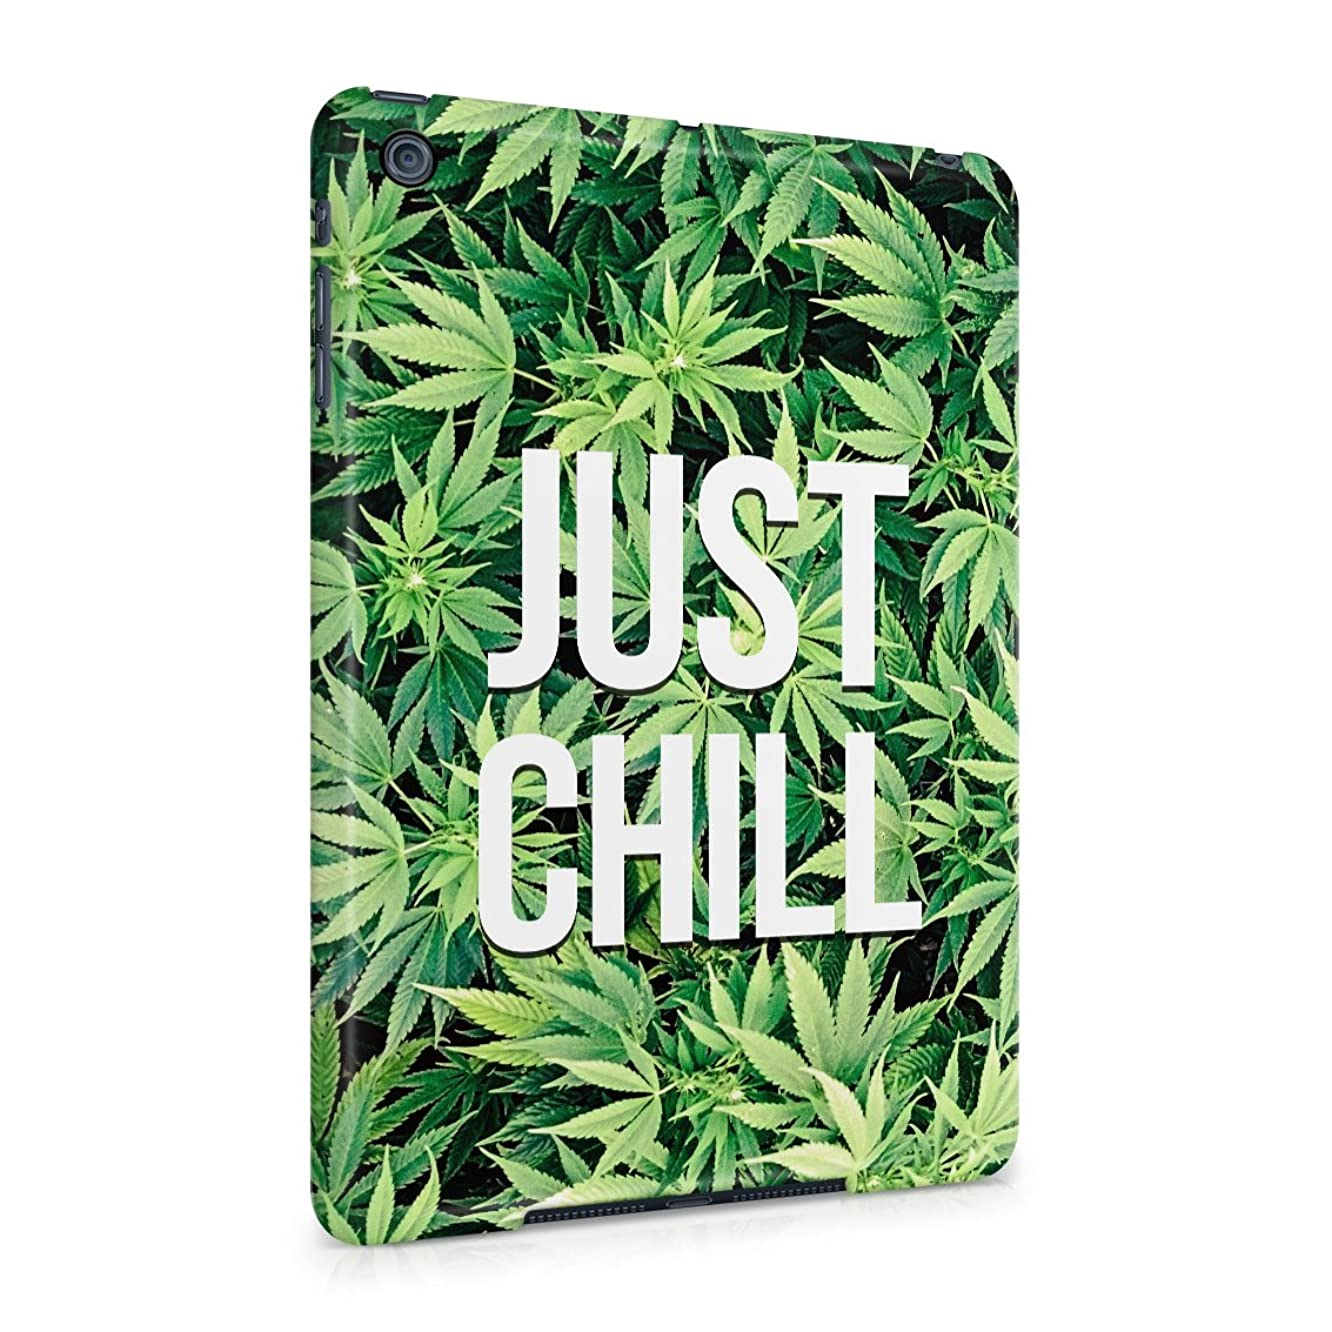 Just Chill Stoner 420 Weed Pattern Mary Jane Plastic Tablet Snap On Back Case Cover Shell For iPad Mini